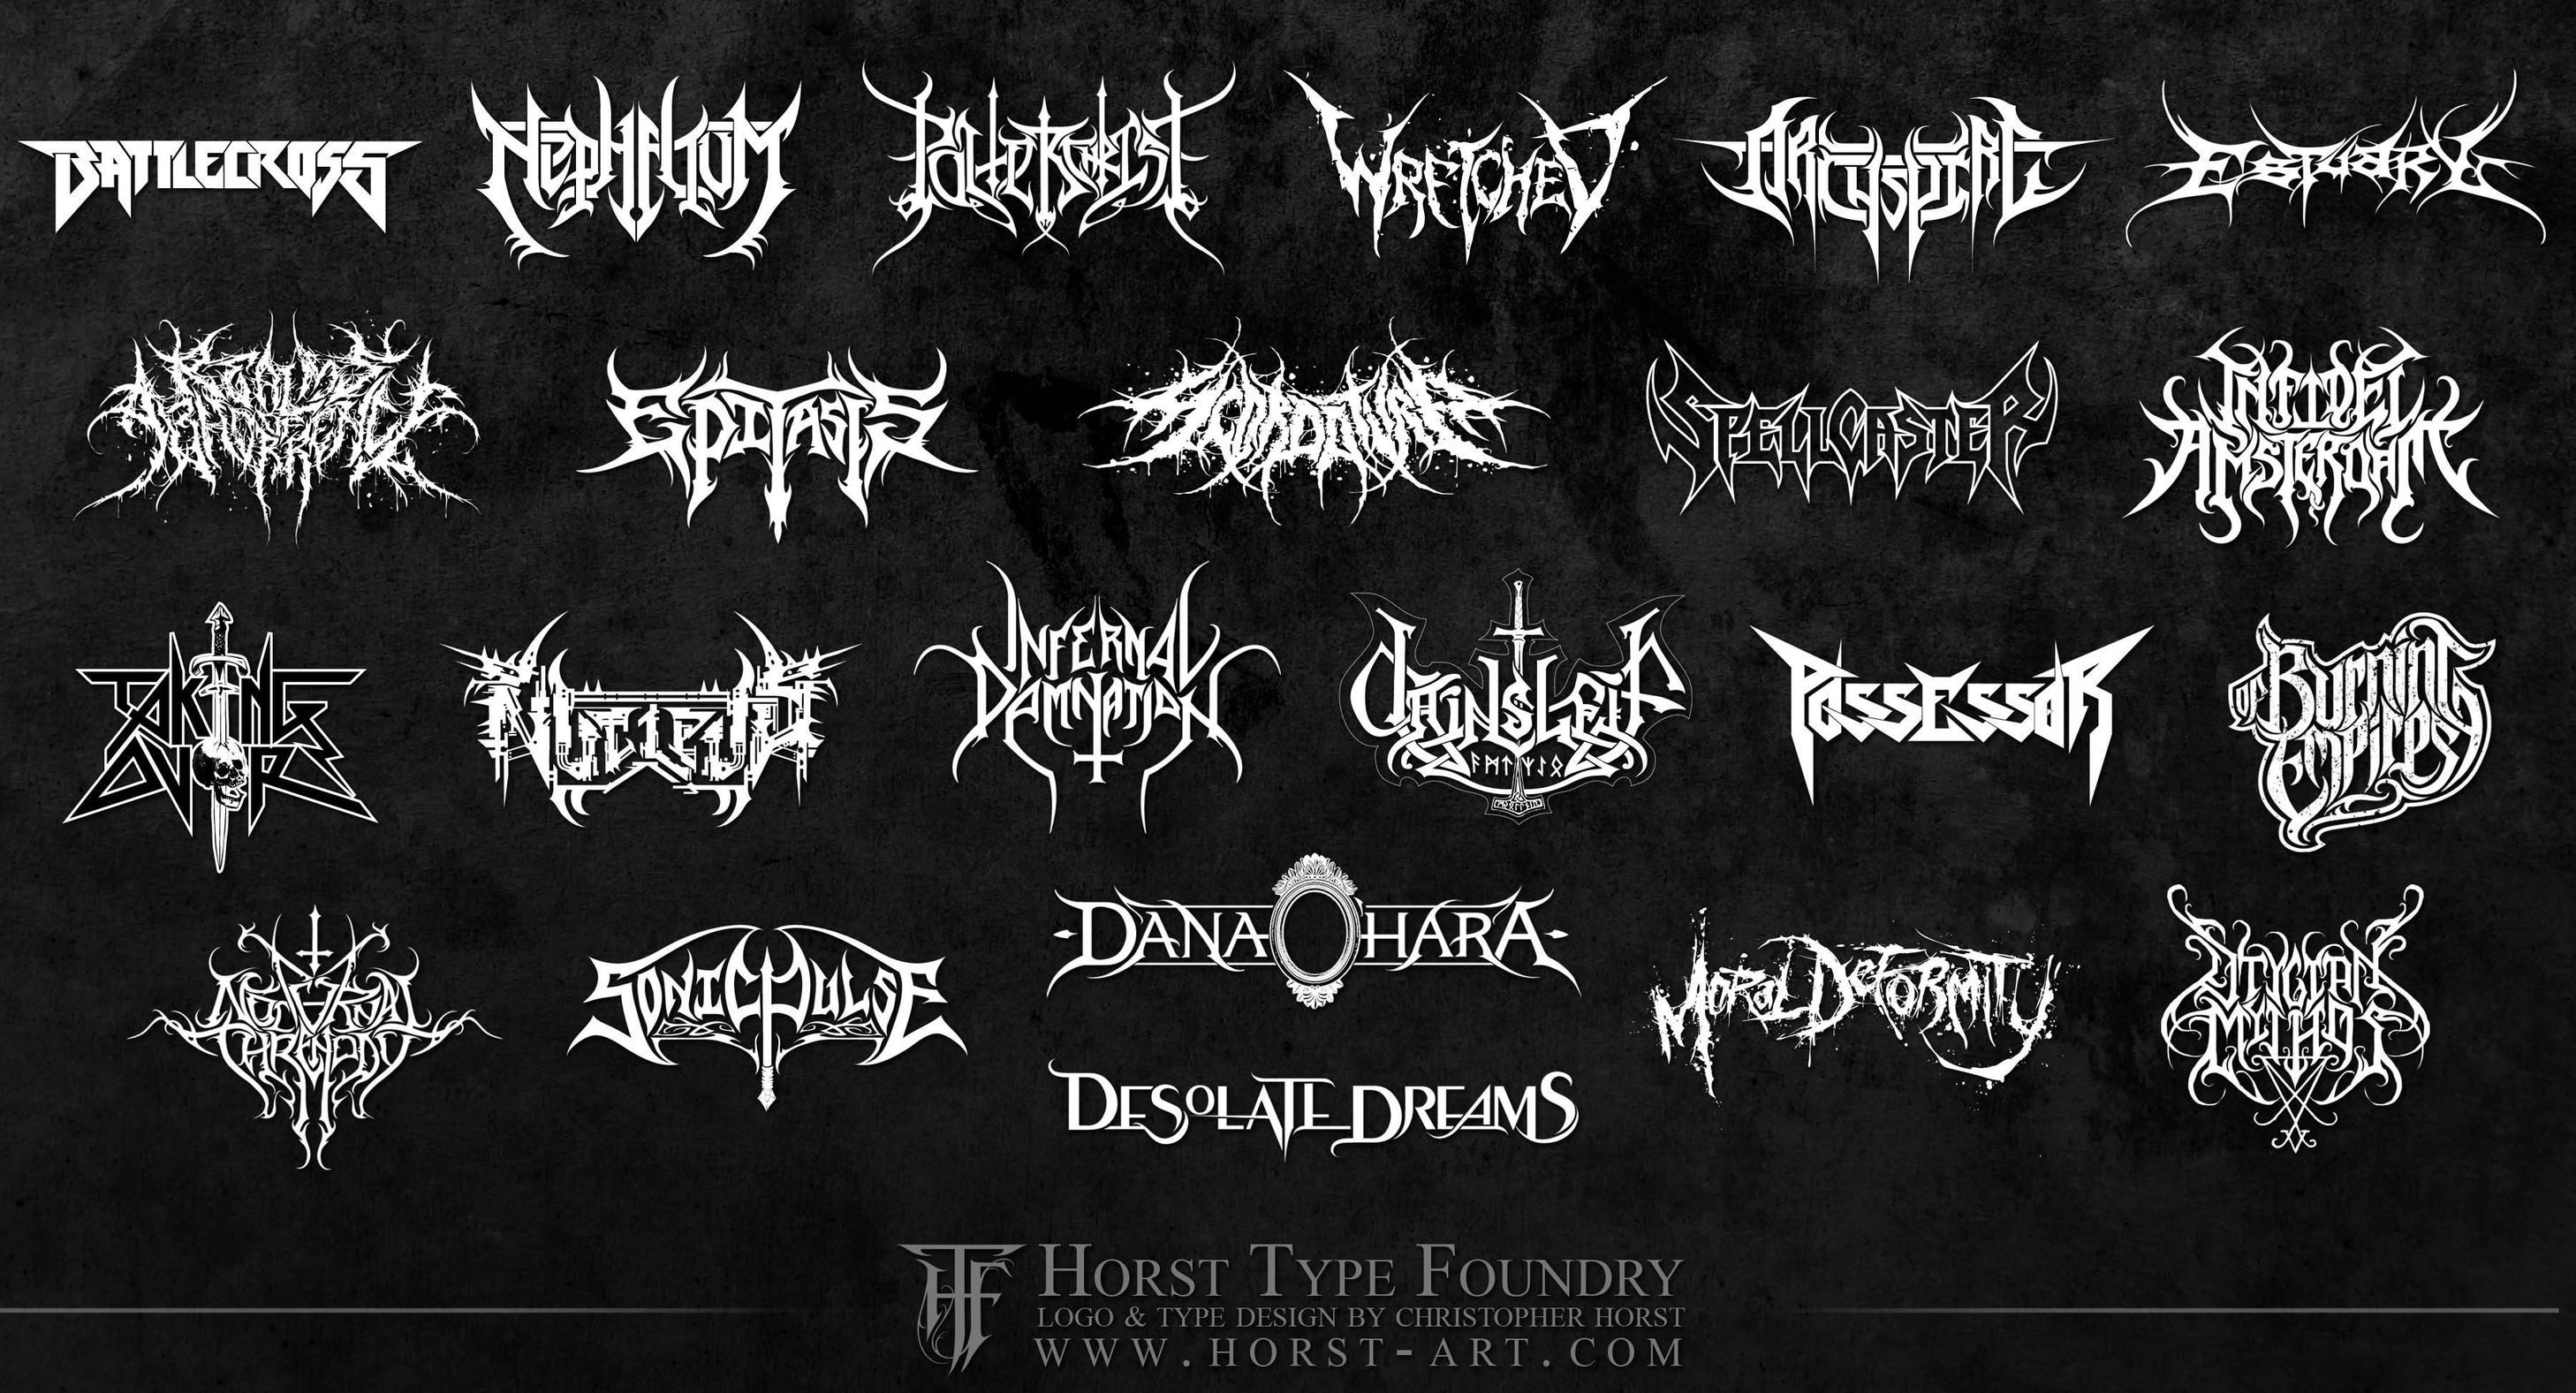 On Heavy Metal Heavy Metal Logos Ambigrams Metal Band Logos Heavy Metal